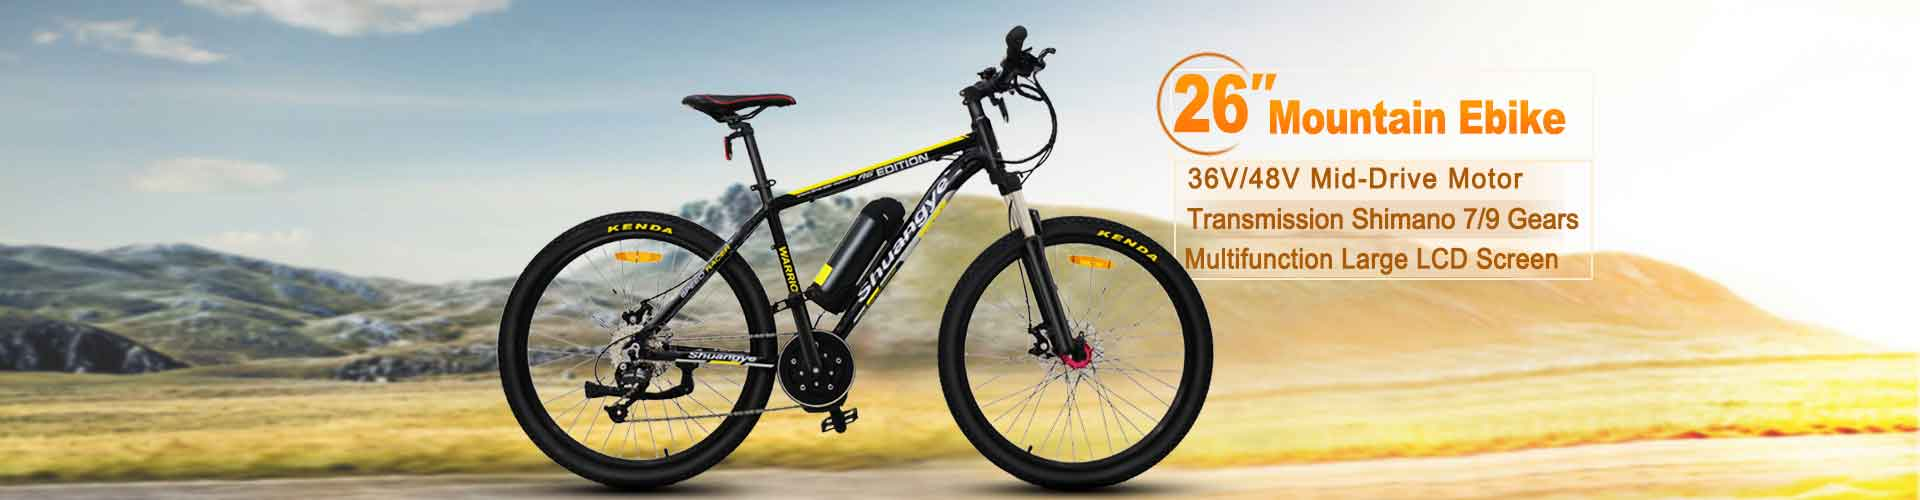 mid drive motor electric bike